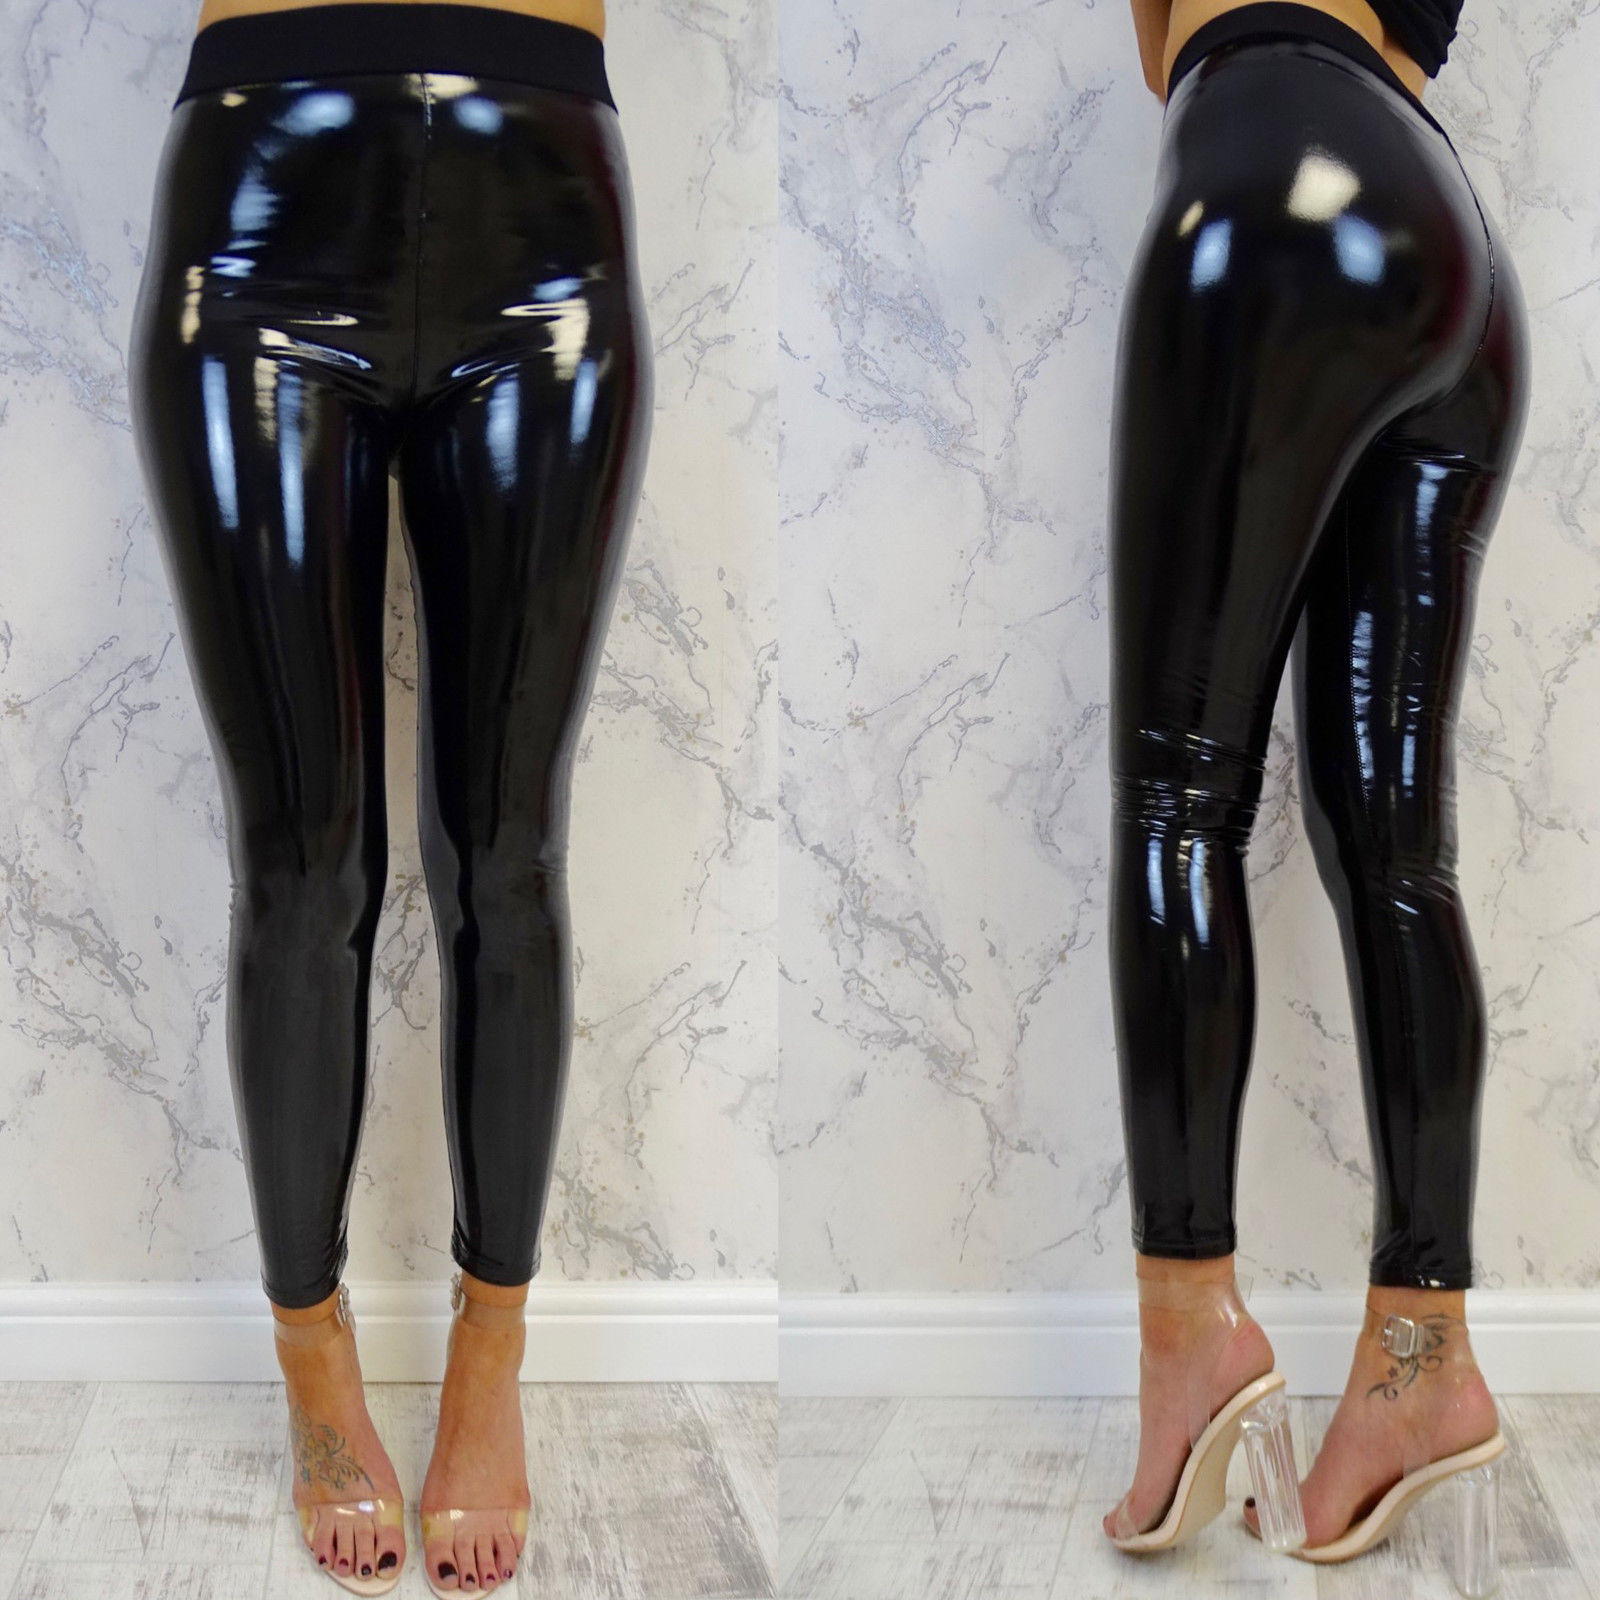 2019 New Sexy Women Ladies Pants PVC Wet Look Shiny Disco Elasticated High Waist Leggings Black Pant Slim Soft image